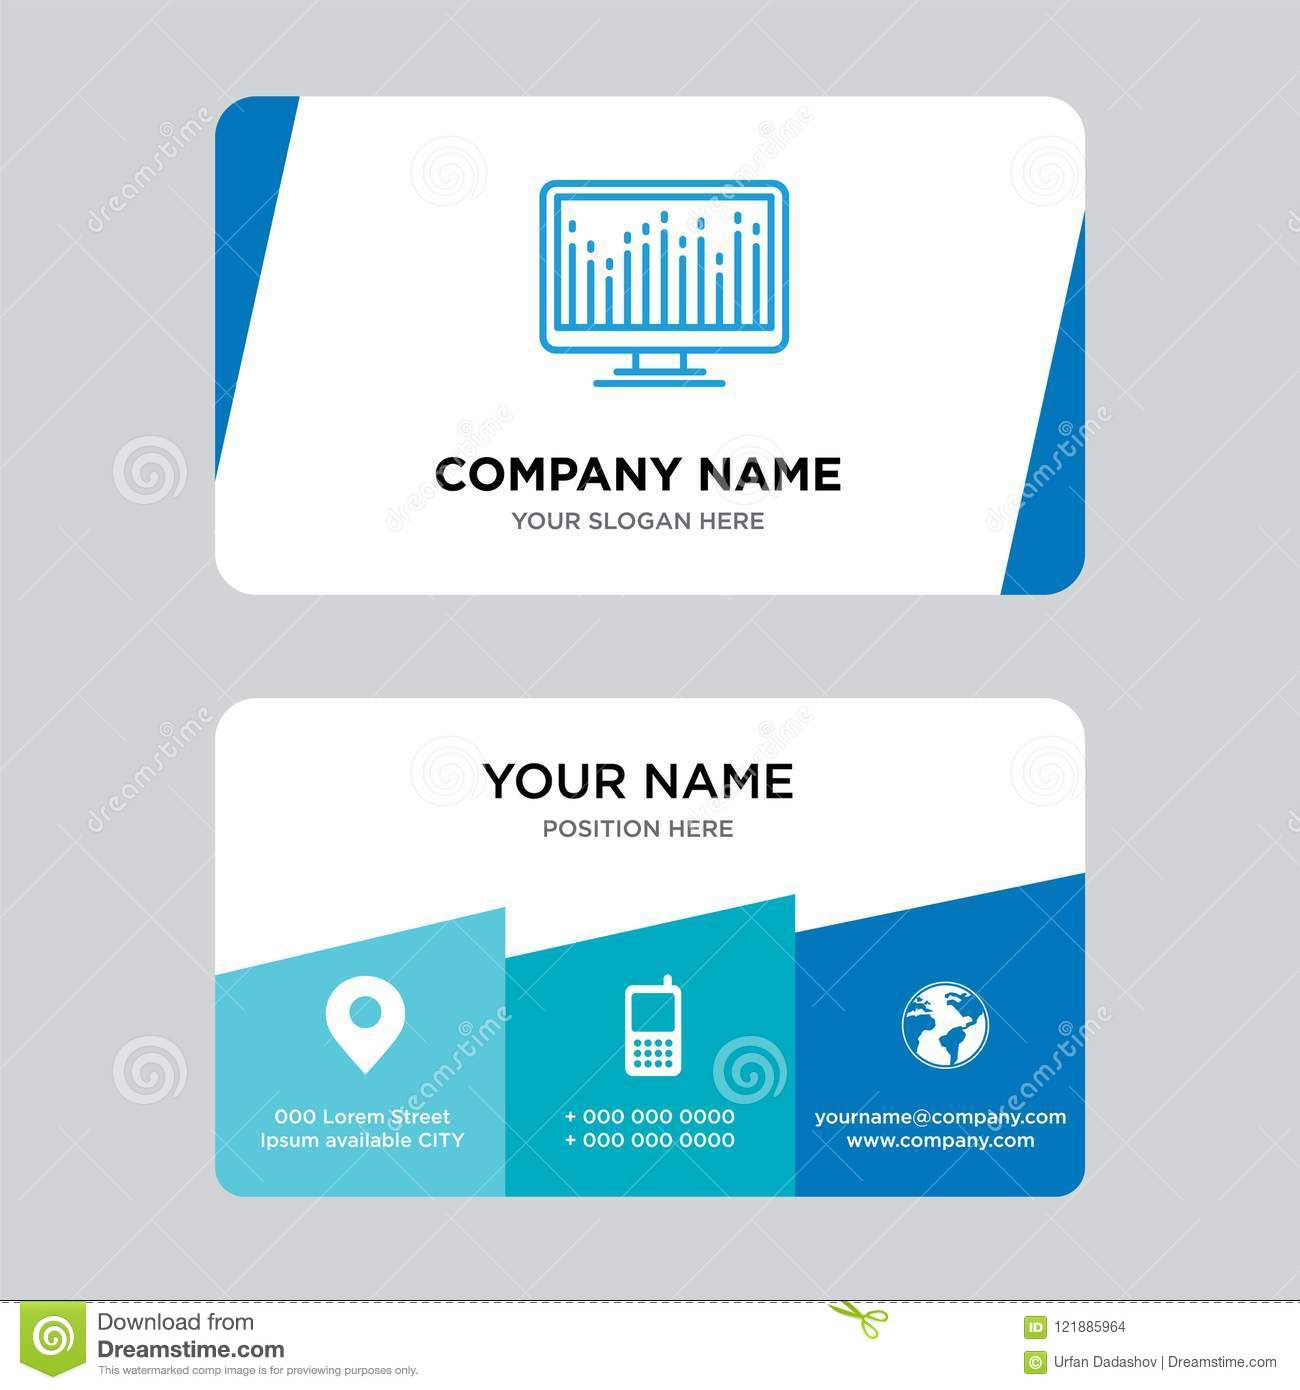 Computer business card design template visiting for your company computer business card design template visiting for your company modern creative and clean identity card vector illustration cheaphphosting Image collections